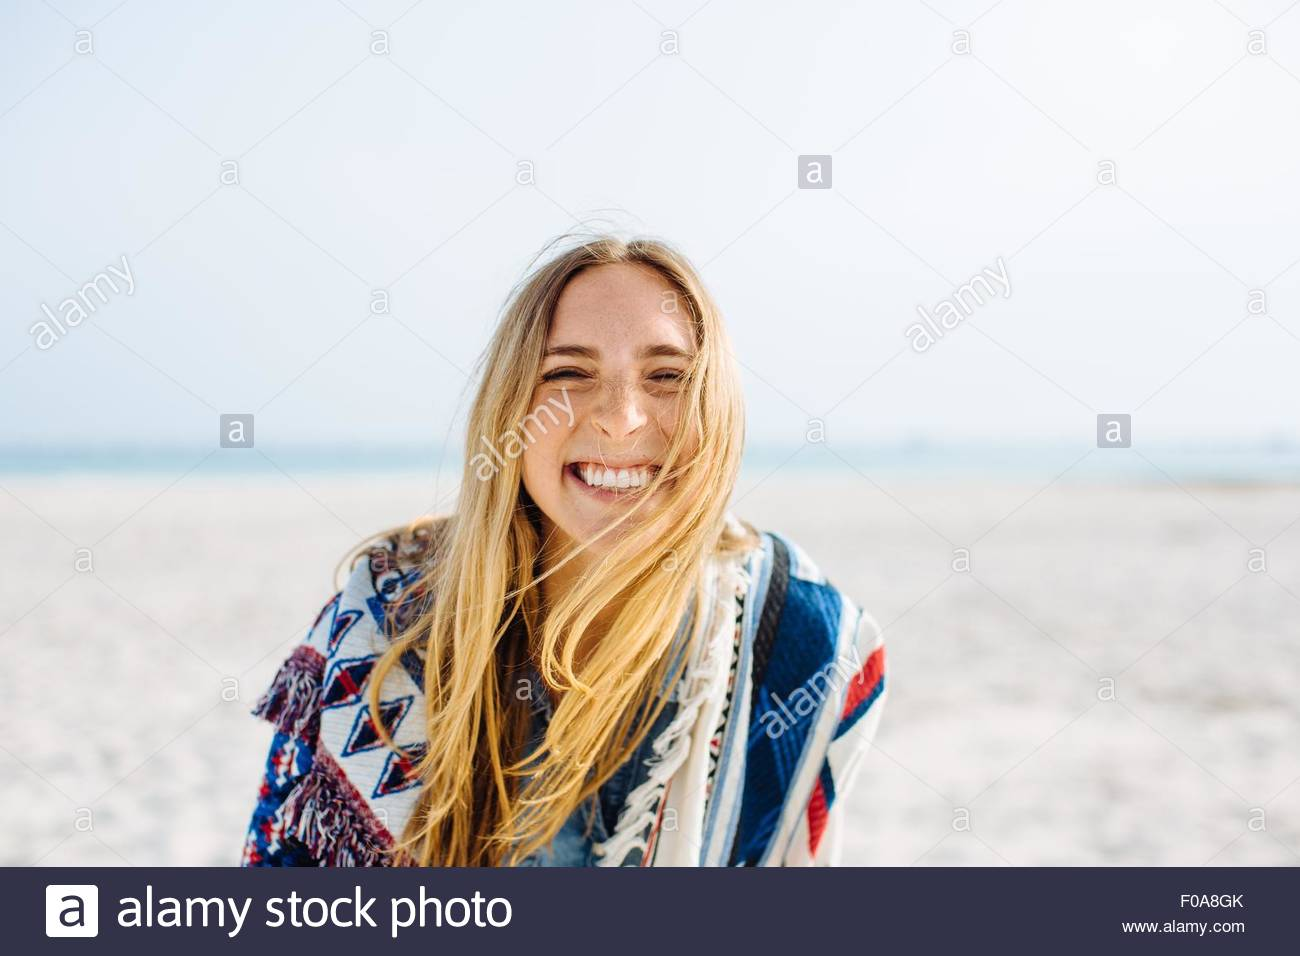 Portrait of young woman wrapped in blanket faisant sourire on beach Photo Stock